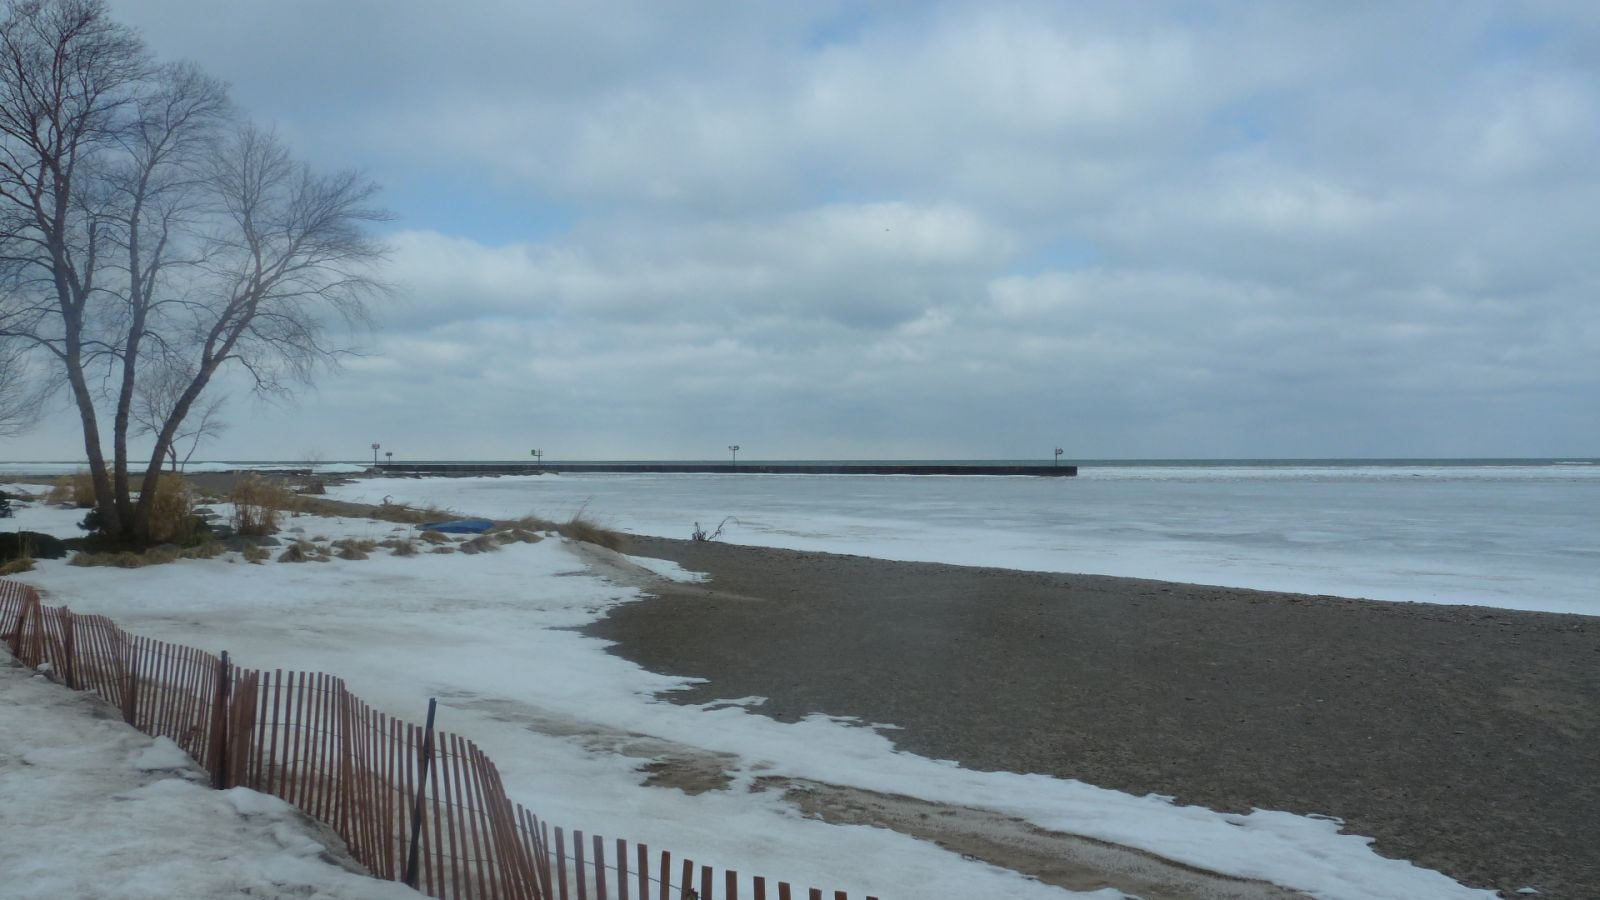 mouth of the Vermilion River clogged by ice on Lake Erie